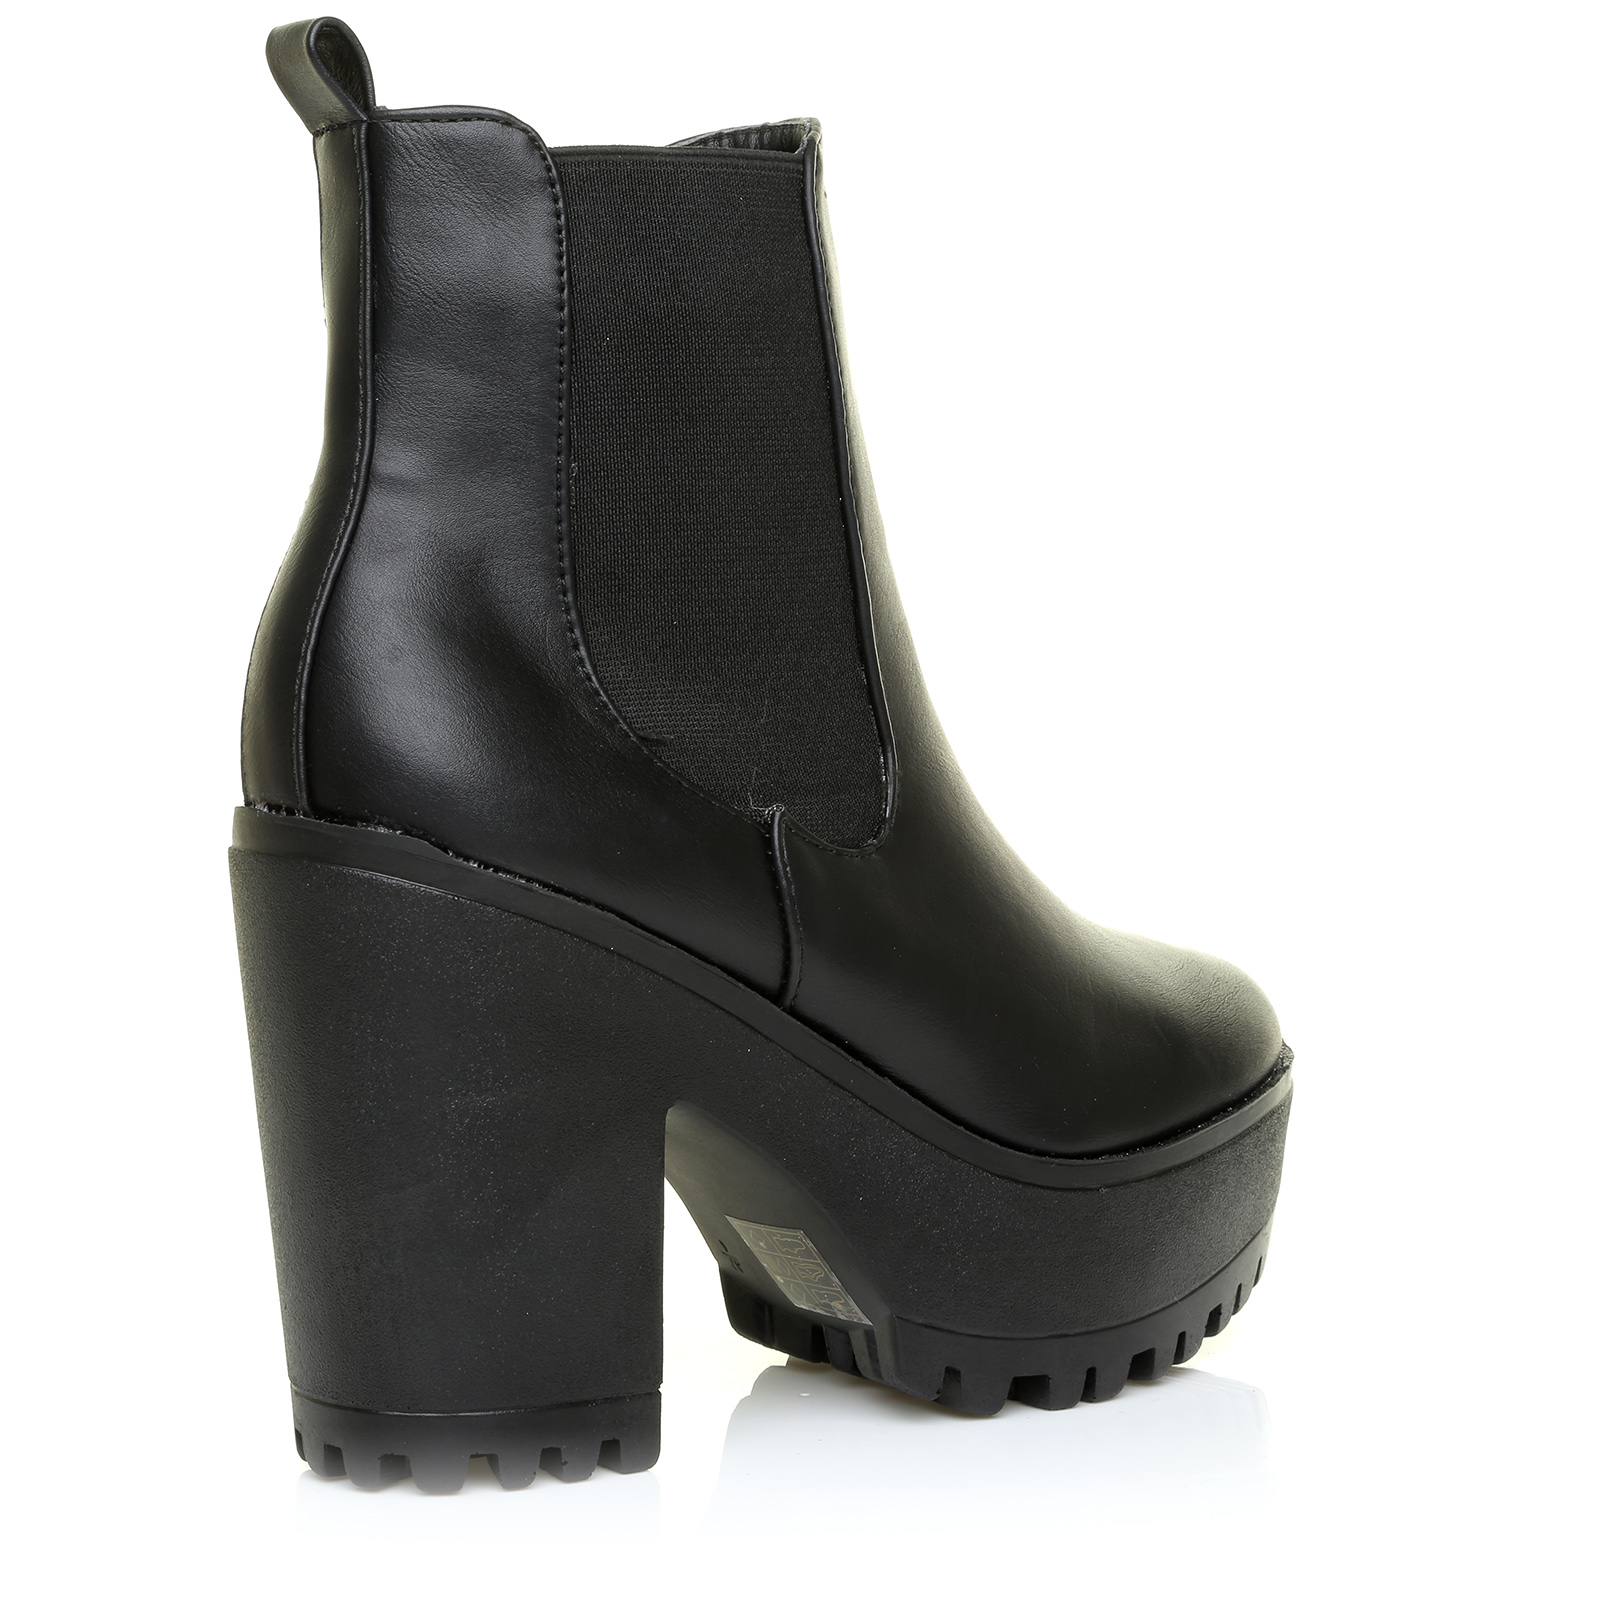 New Womens Ladies Chelsea Chunky Block Heel Grip Sole Ankle Boots ...